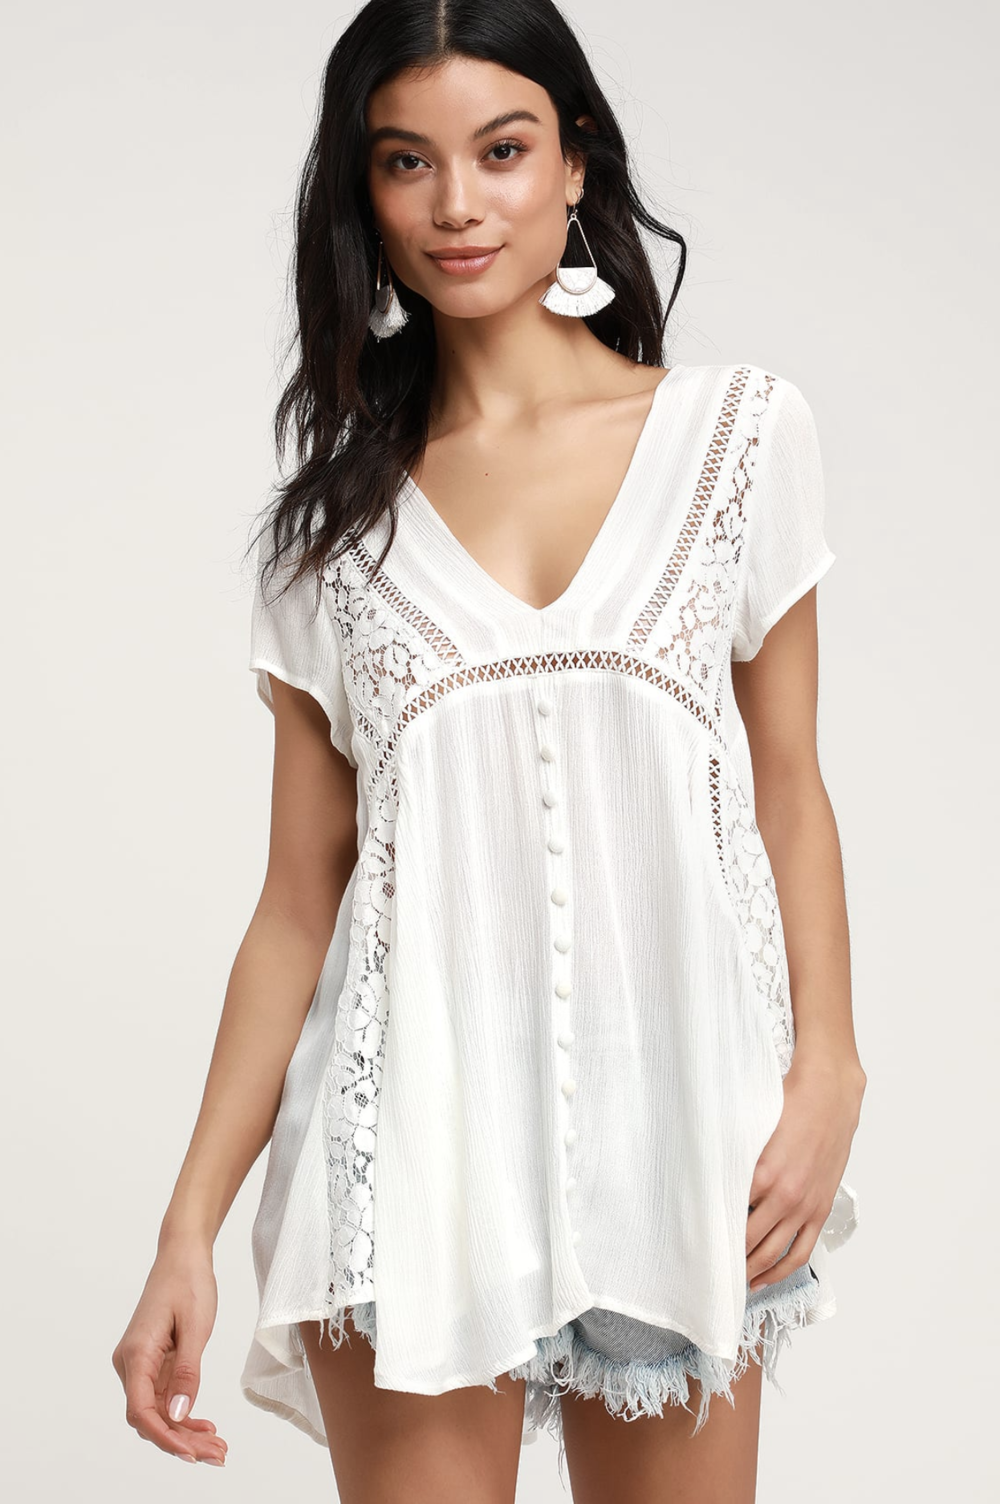 Stroll into style with the Sage the Label Take a Walk Ivory Sheer Lace Tunic Top! This sweet little number is shaped from lightweight and sheer woven fabric punctuated with floral and crochet lace across the flowy bodice and relaxed waist. A decorative button placket adds the final bit of detail to this lovely tunic top. Short cap sleeves and a V-neckline.